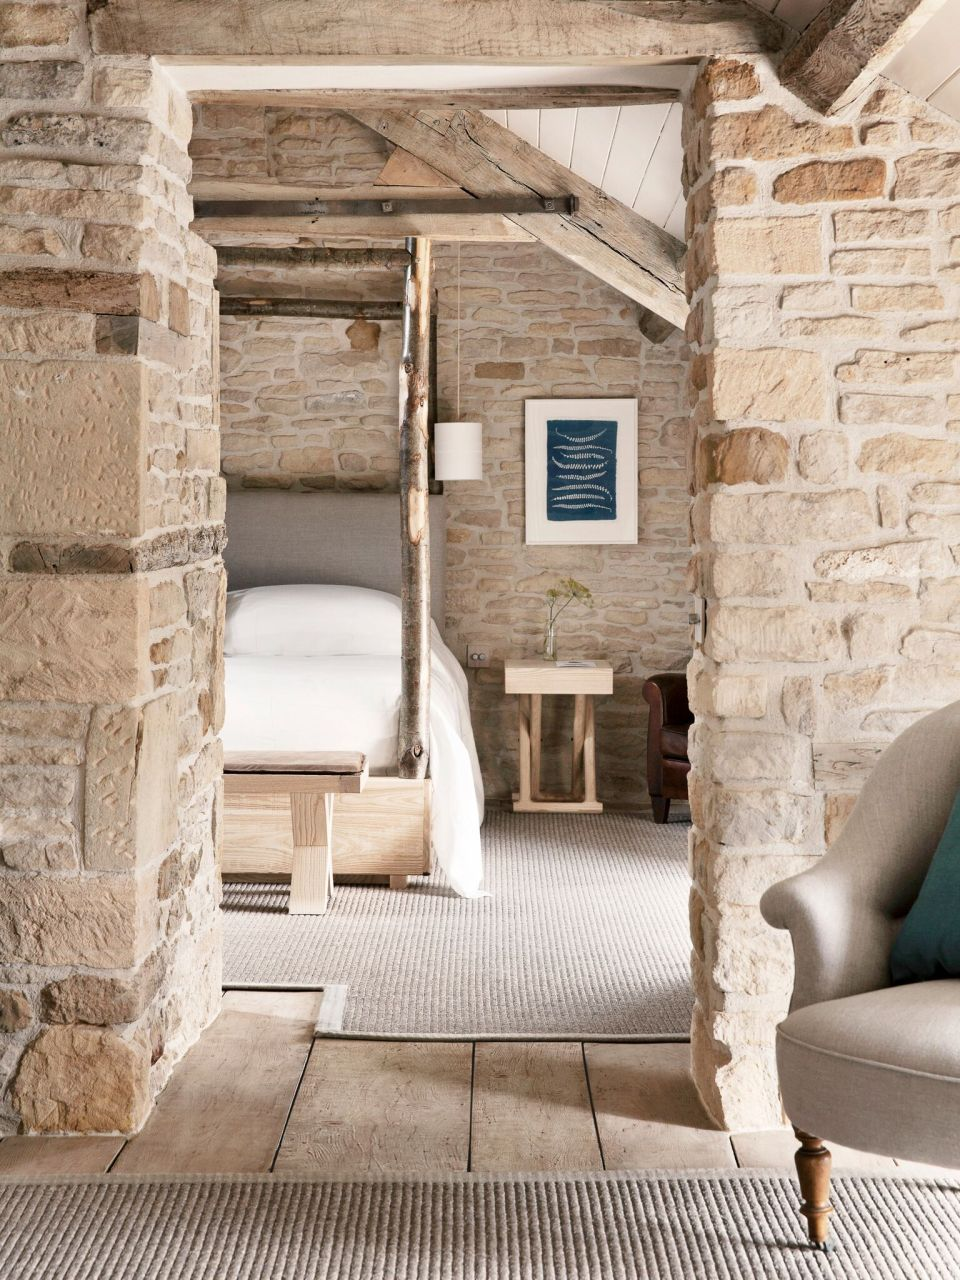 Best hotels in the Cotswolds